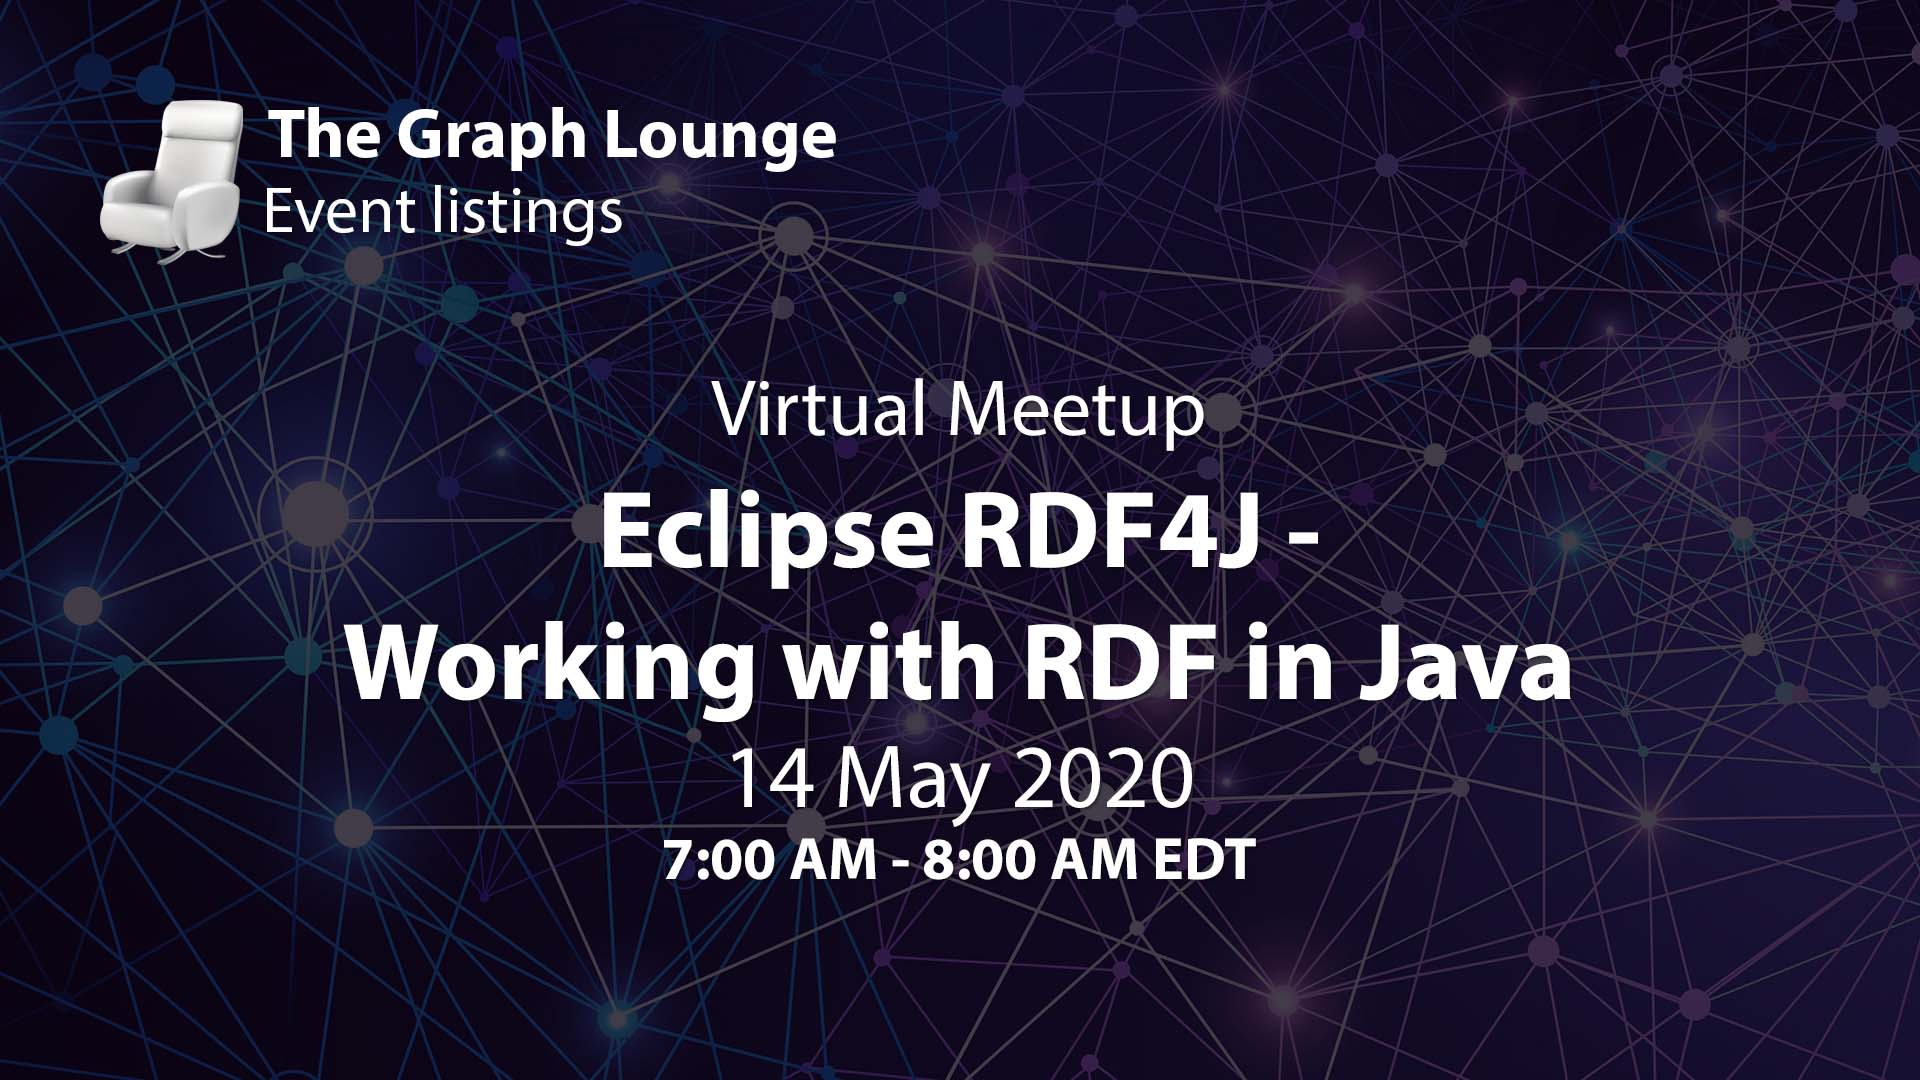 Eclipse RDF4J: Working with RDF in Java